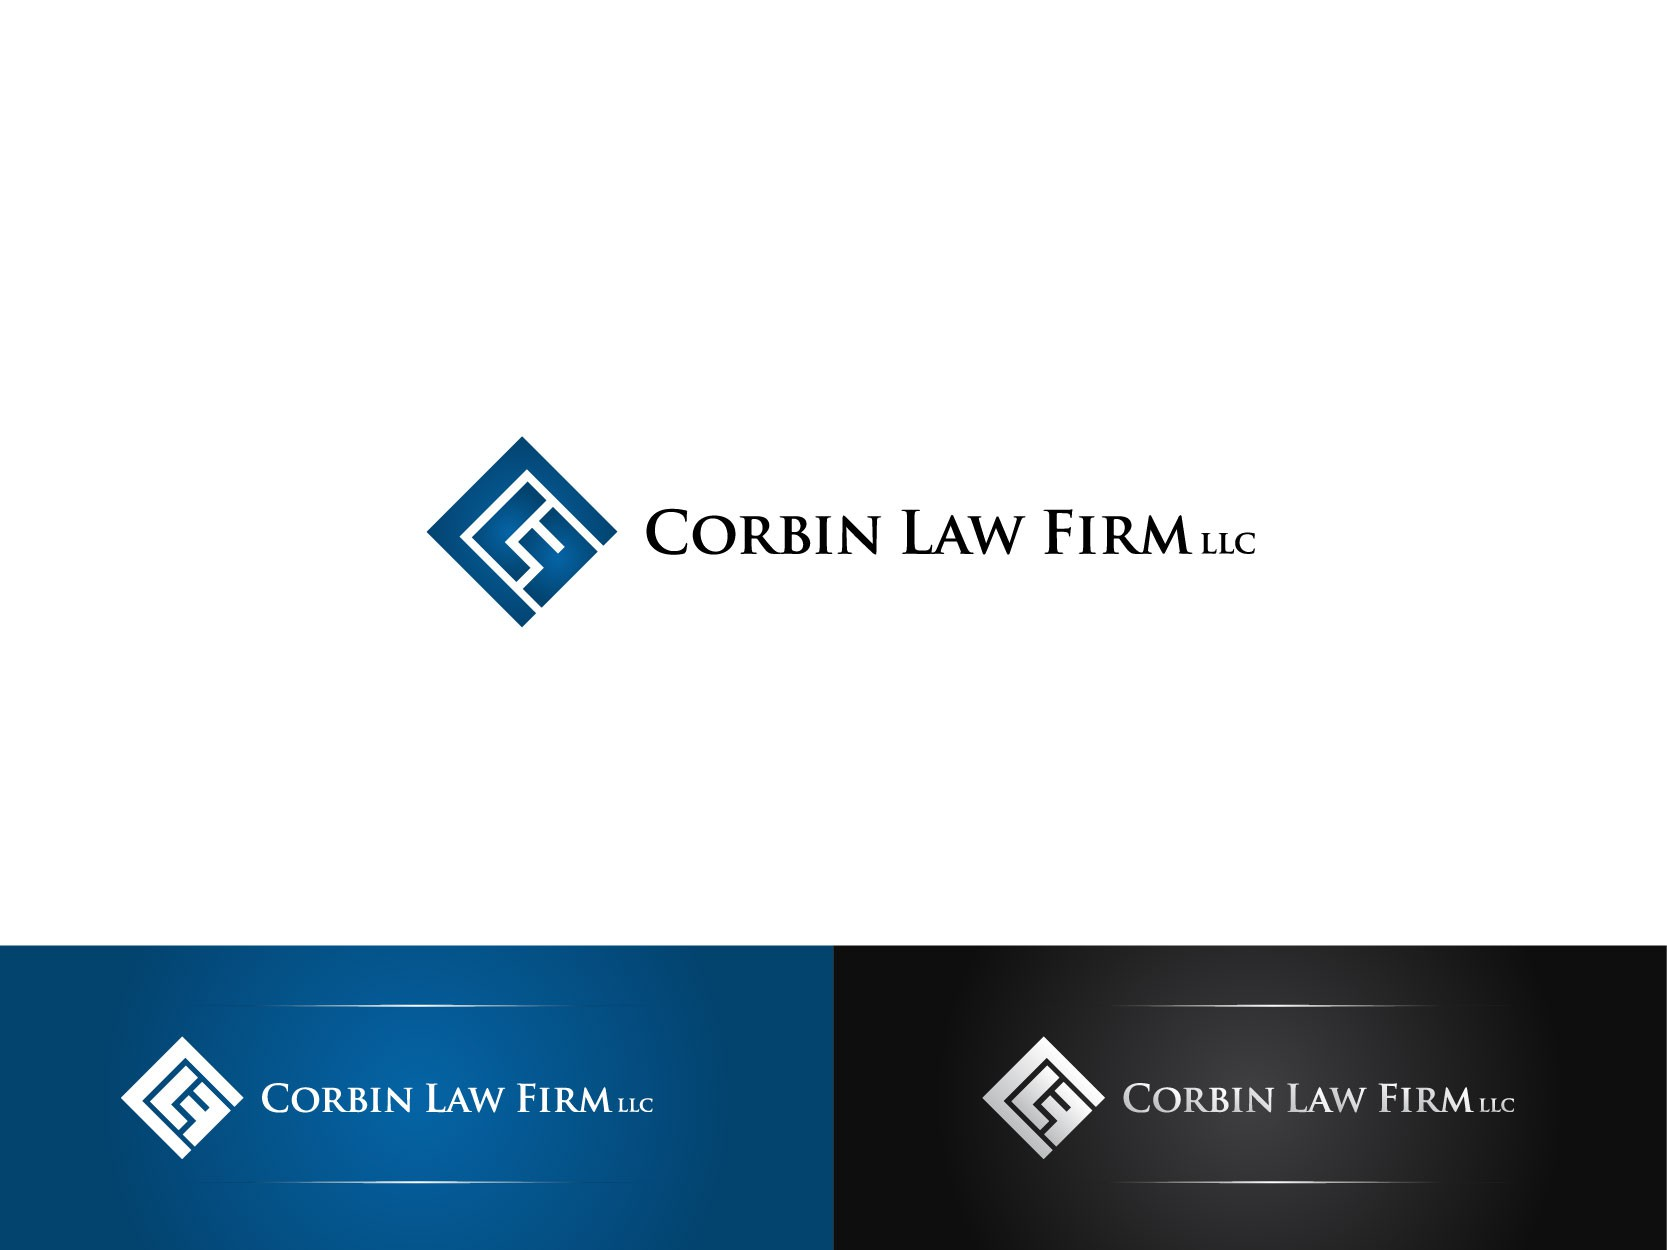 New logo wanted for Corbin Law Firm, LLC